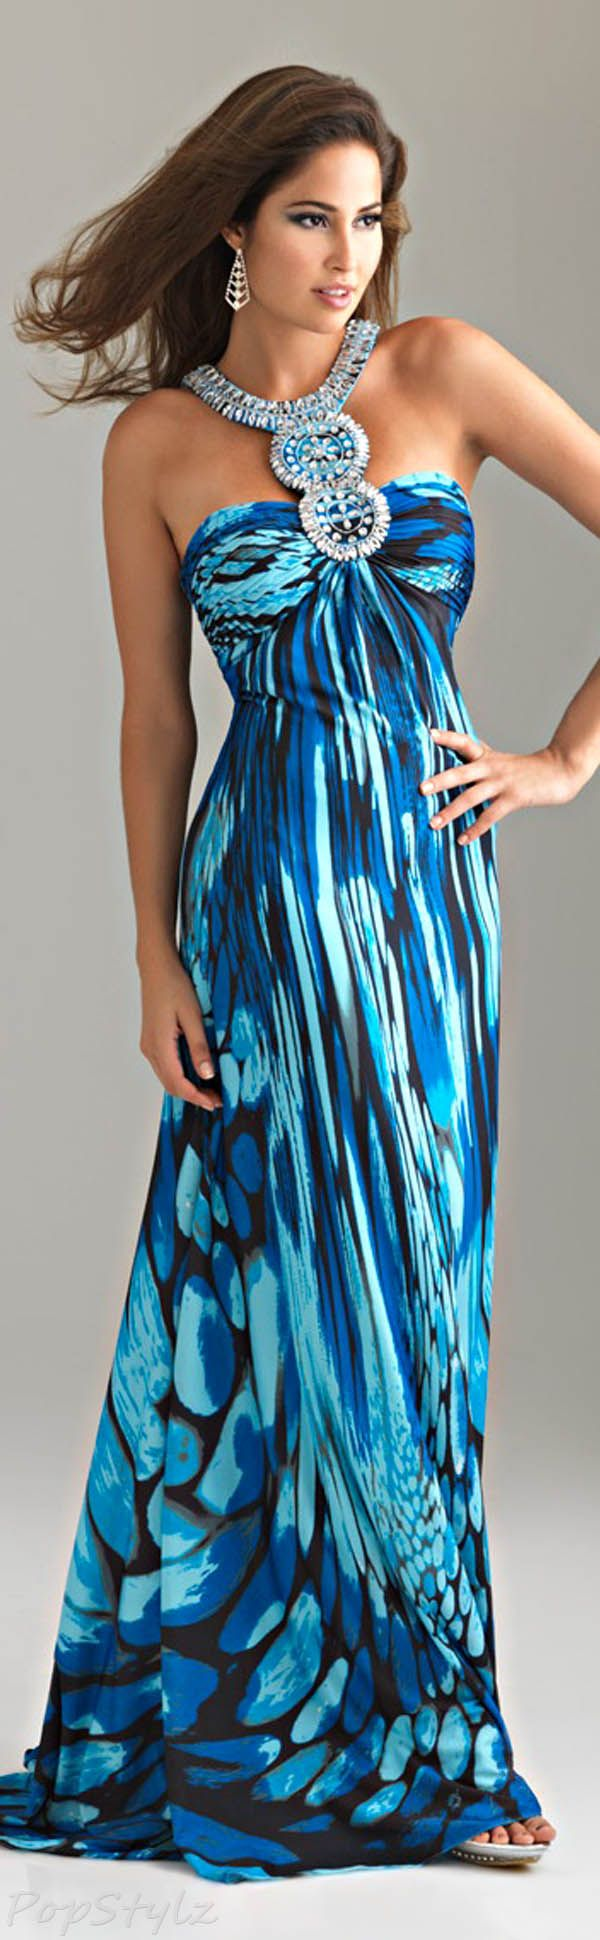 The best images about dress on pinterest jersey dresses long